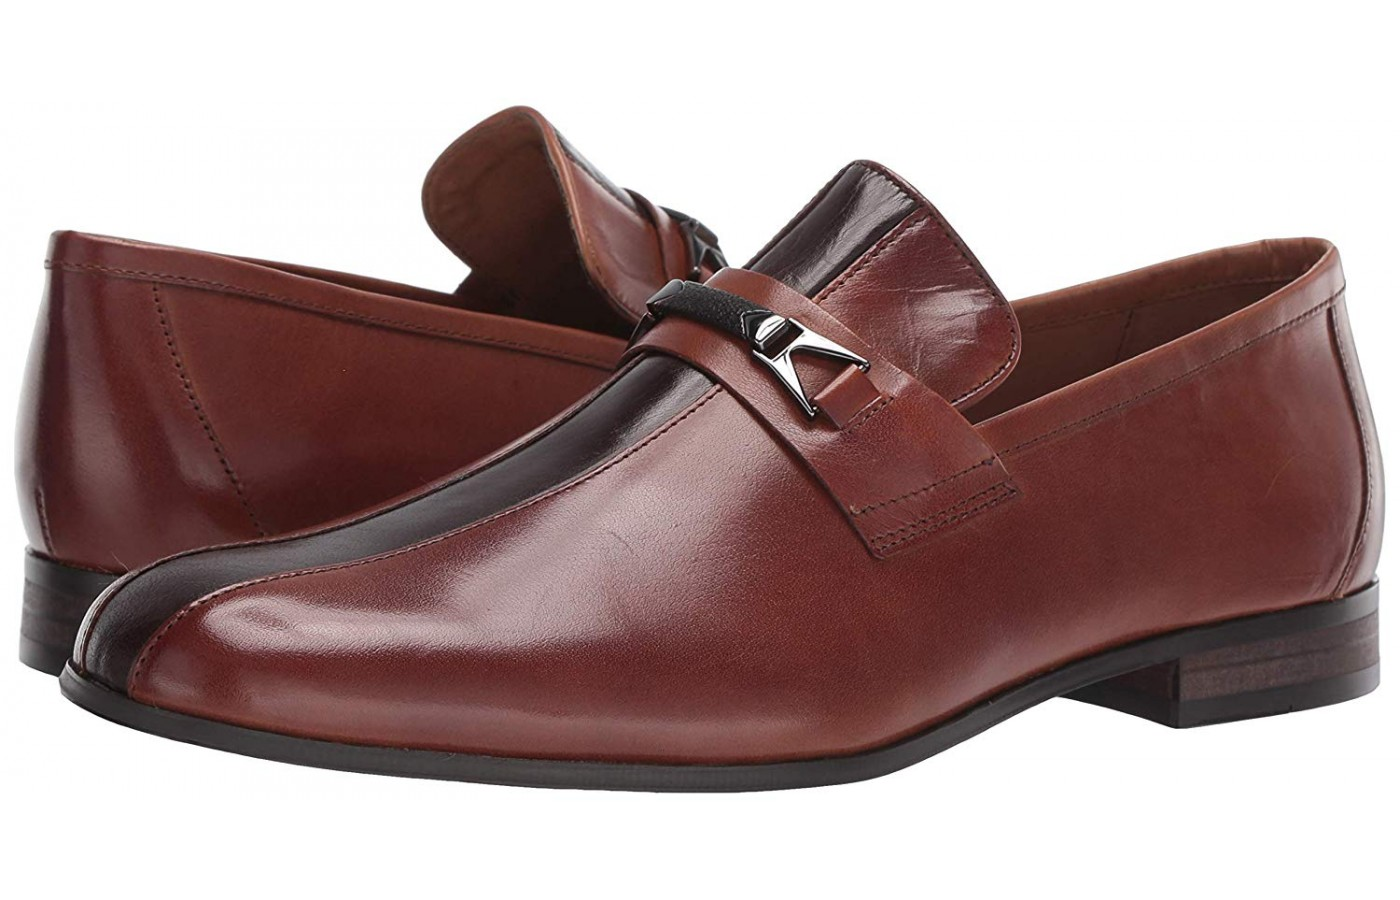 Steve Madden Graft Loafer pair